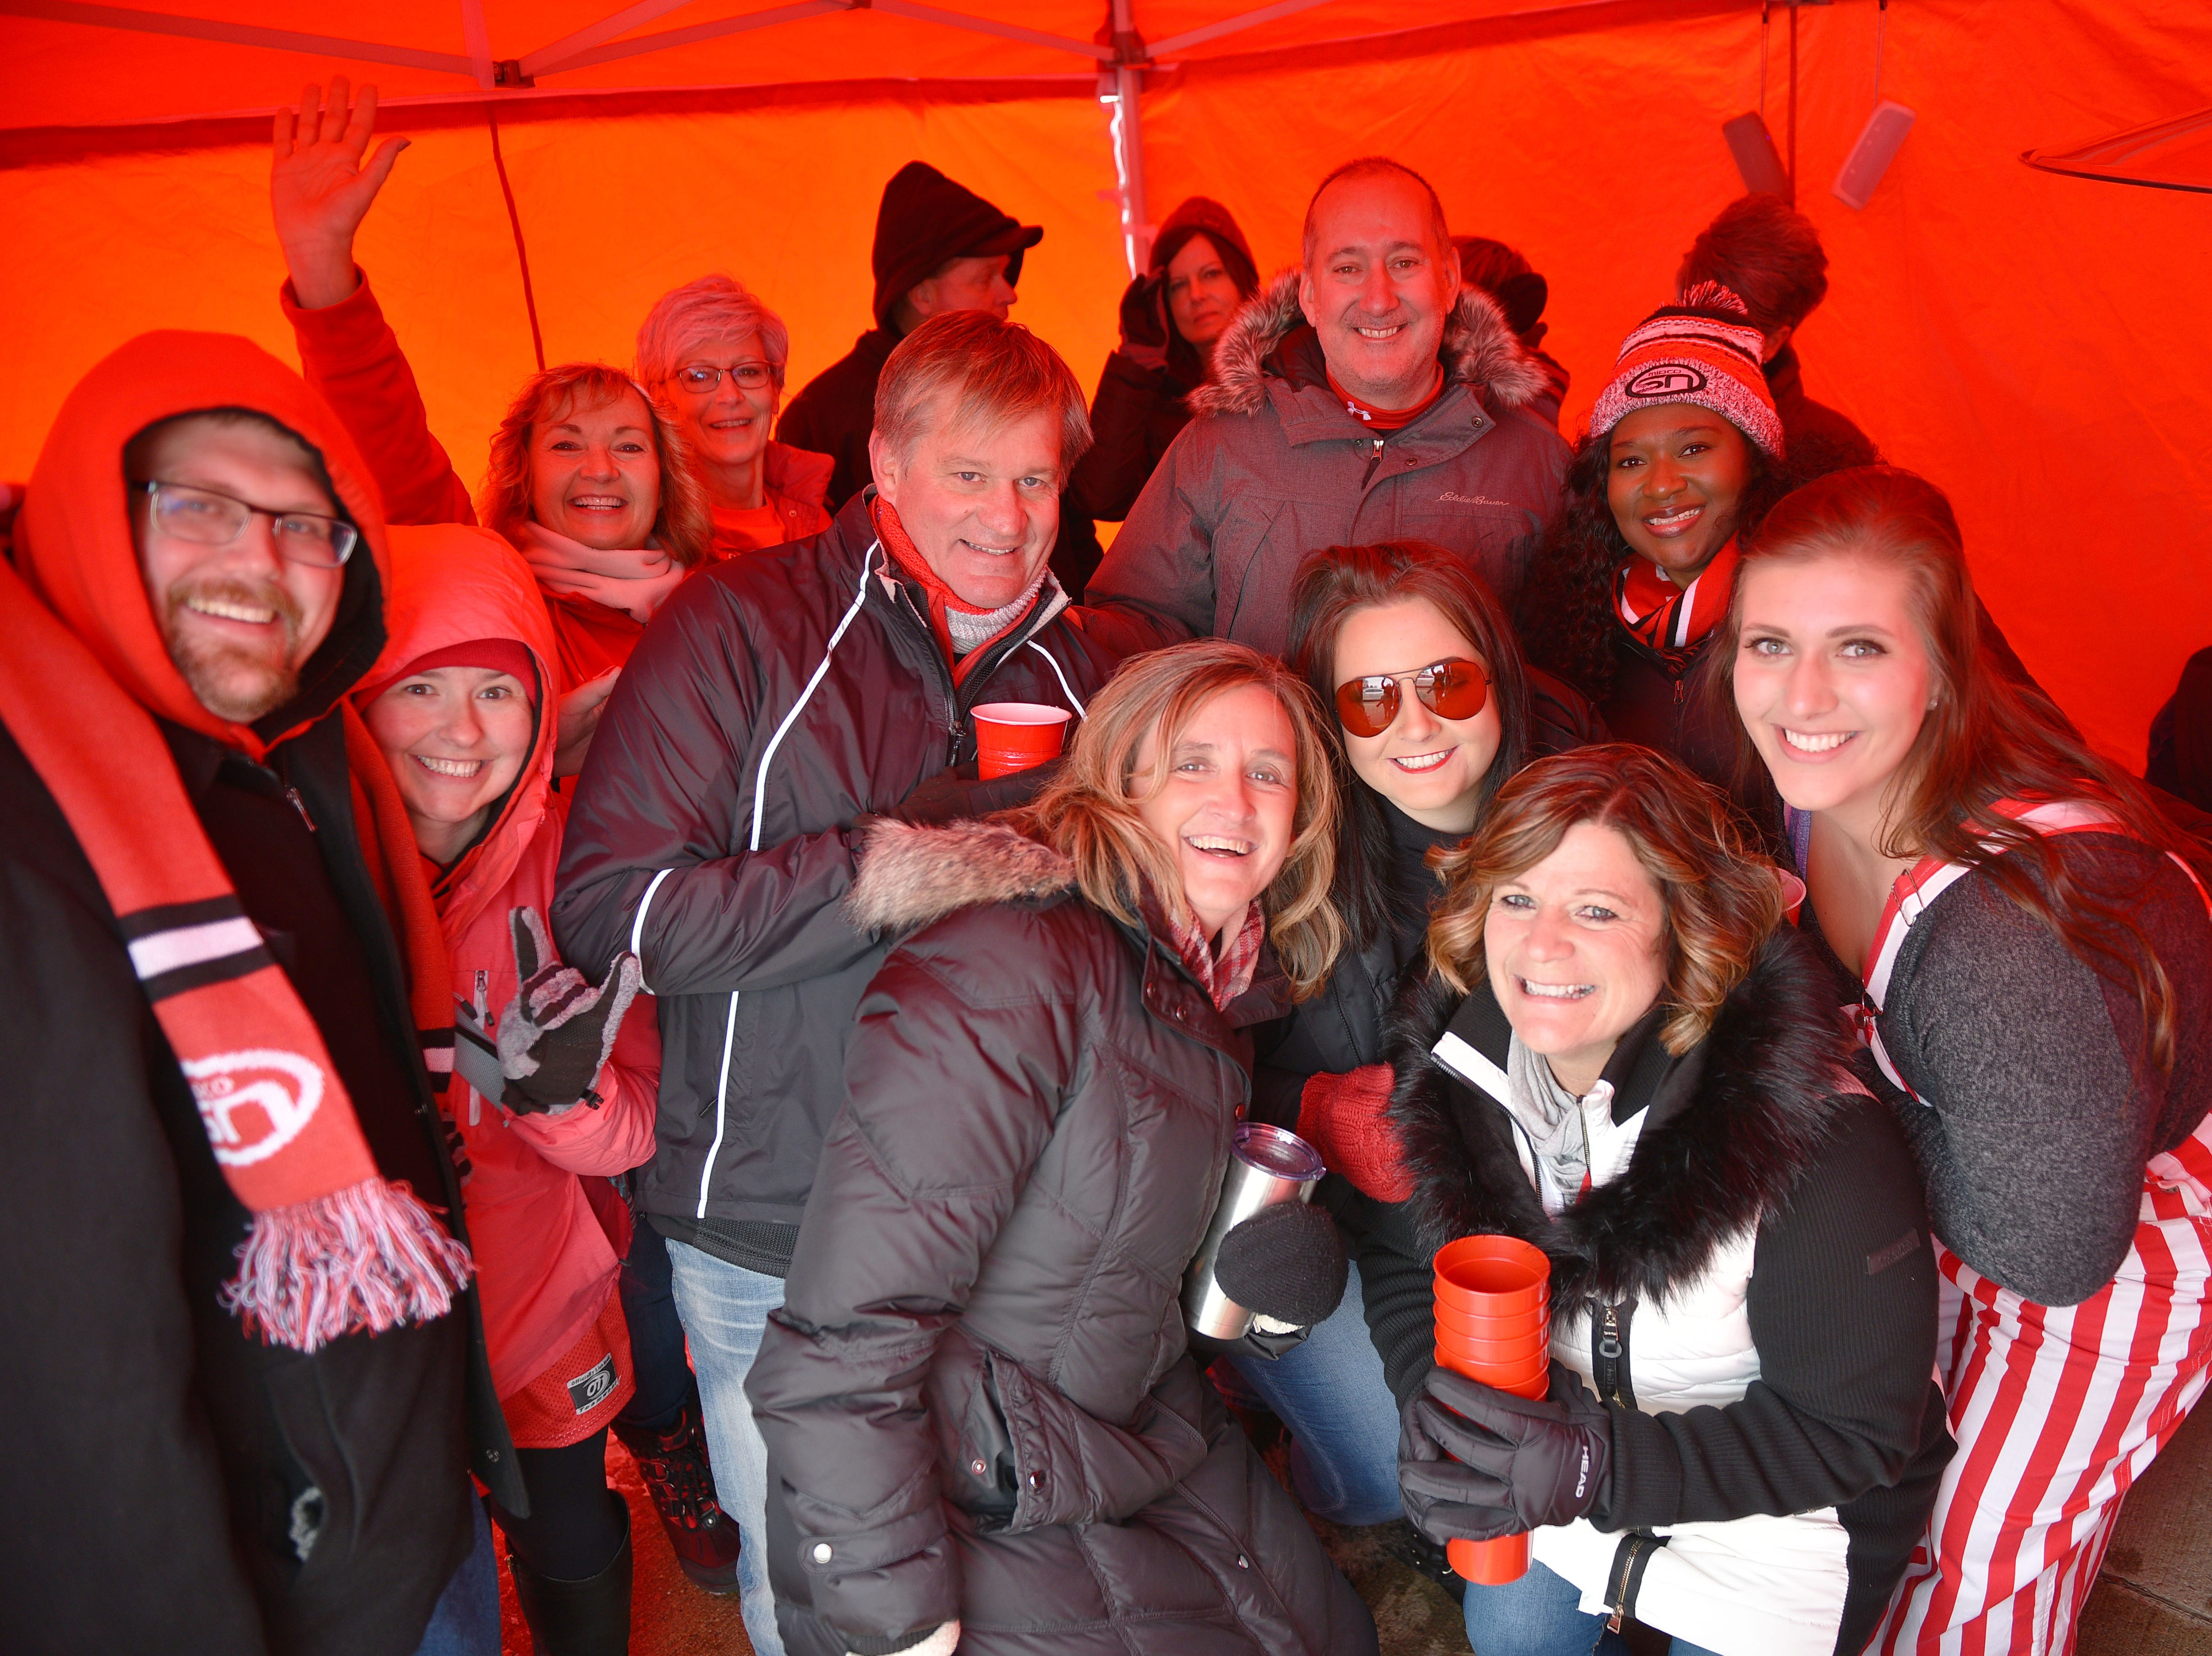 USD fans tailgate before the game against Western Illinois Saturday, Nov. 10, at the DakotaDome in Vermillion.